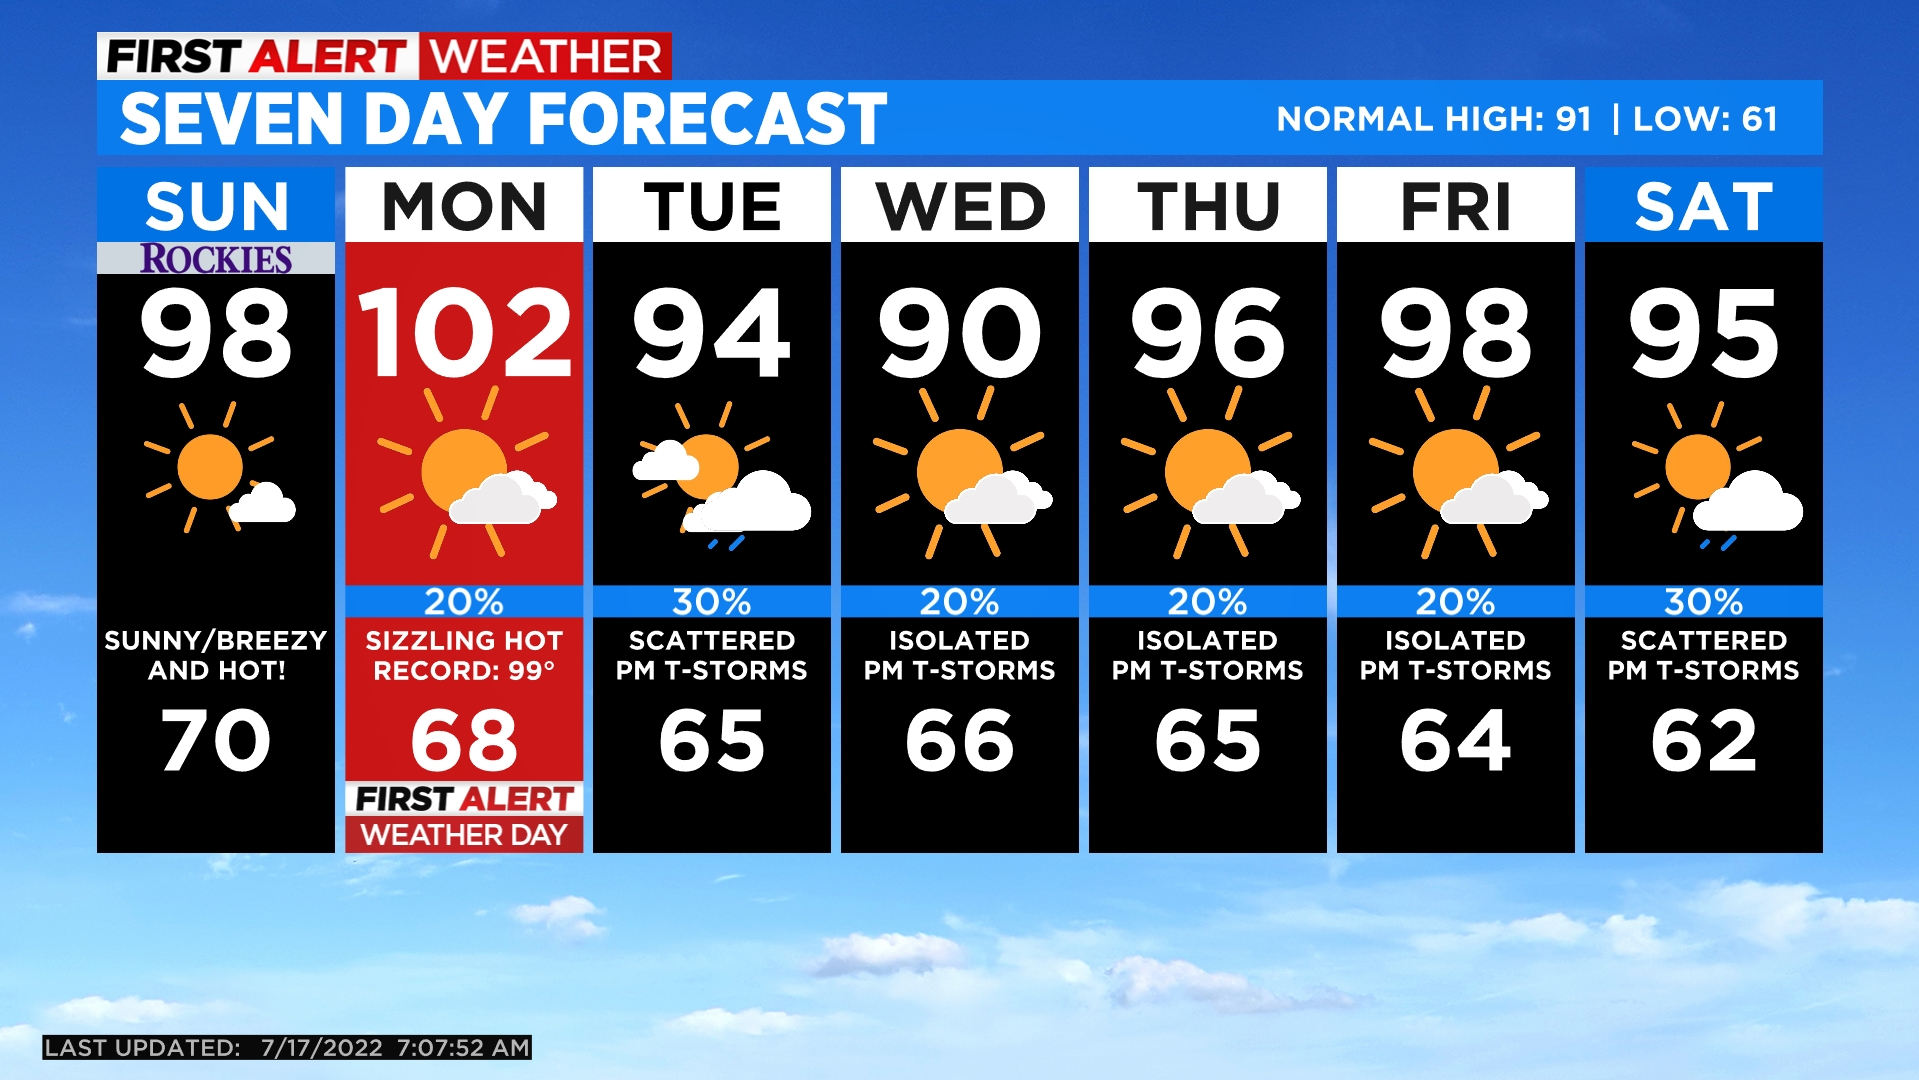 5day A Mix Of Warmth And Gusty Late Day Storms